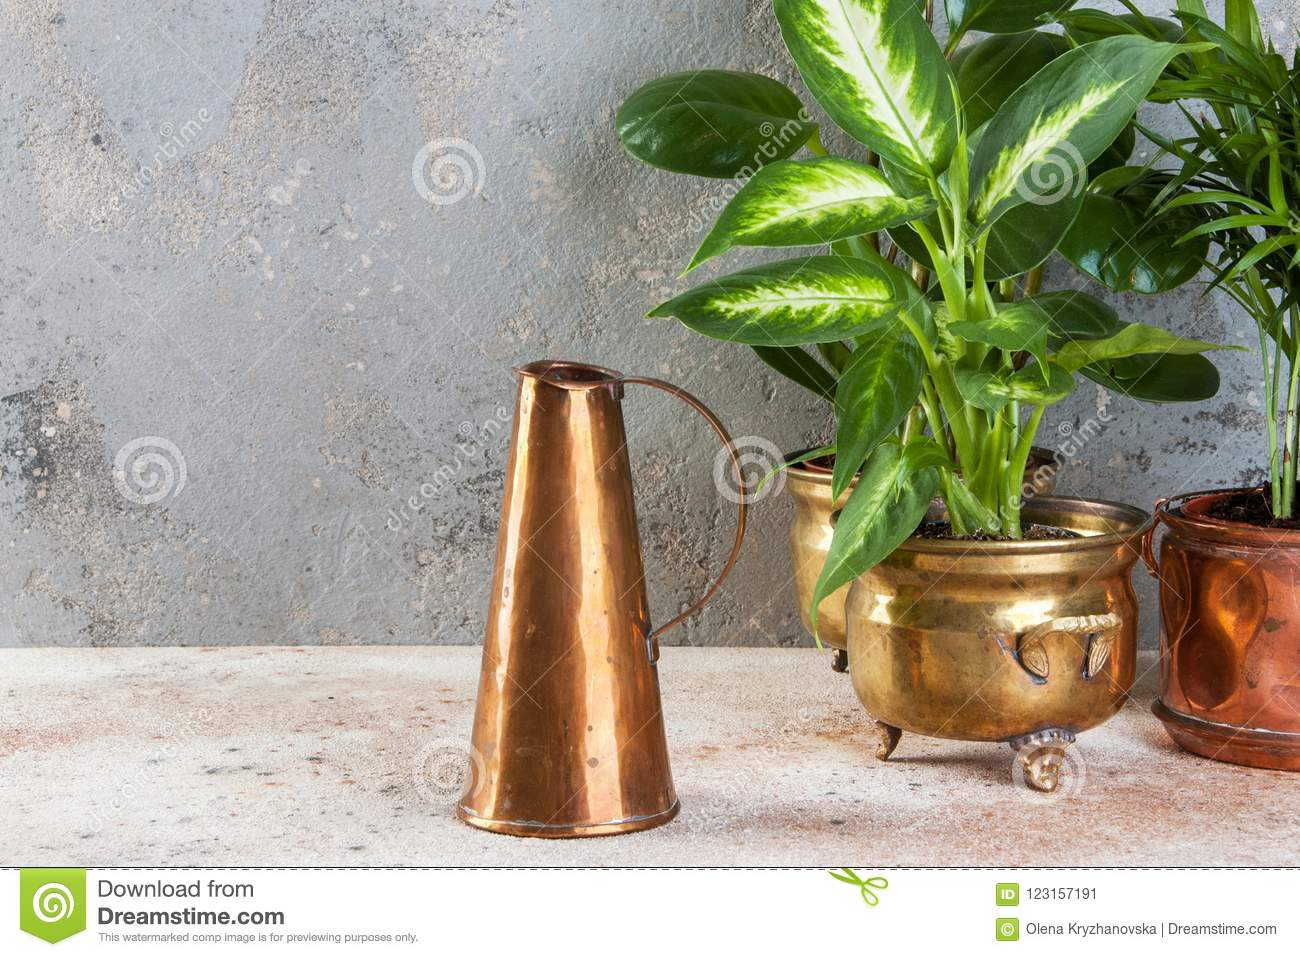 Copper jug and green plants in brass and copper vintage flower pots on a concrete background. Copy space for text. & Green Plants In Brass And Copper Flower Pots Stock Image - Image of ...